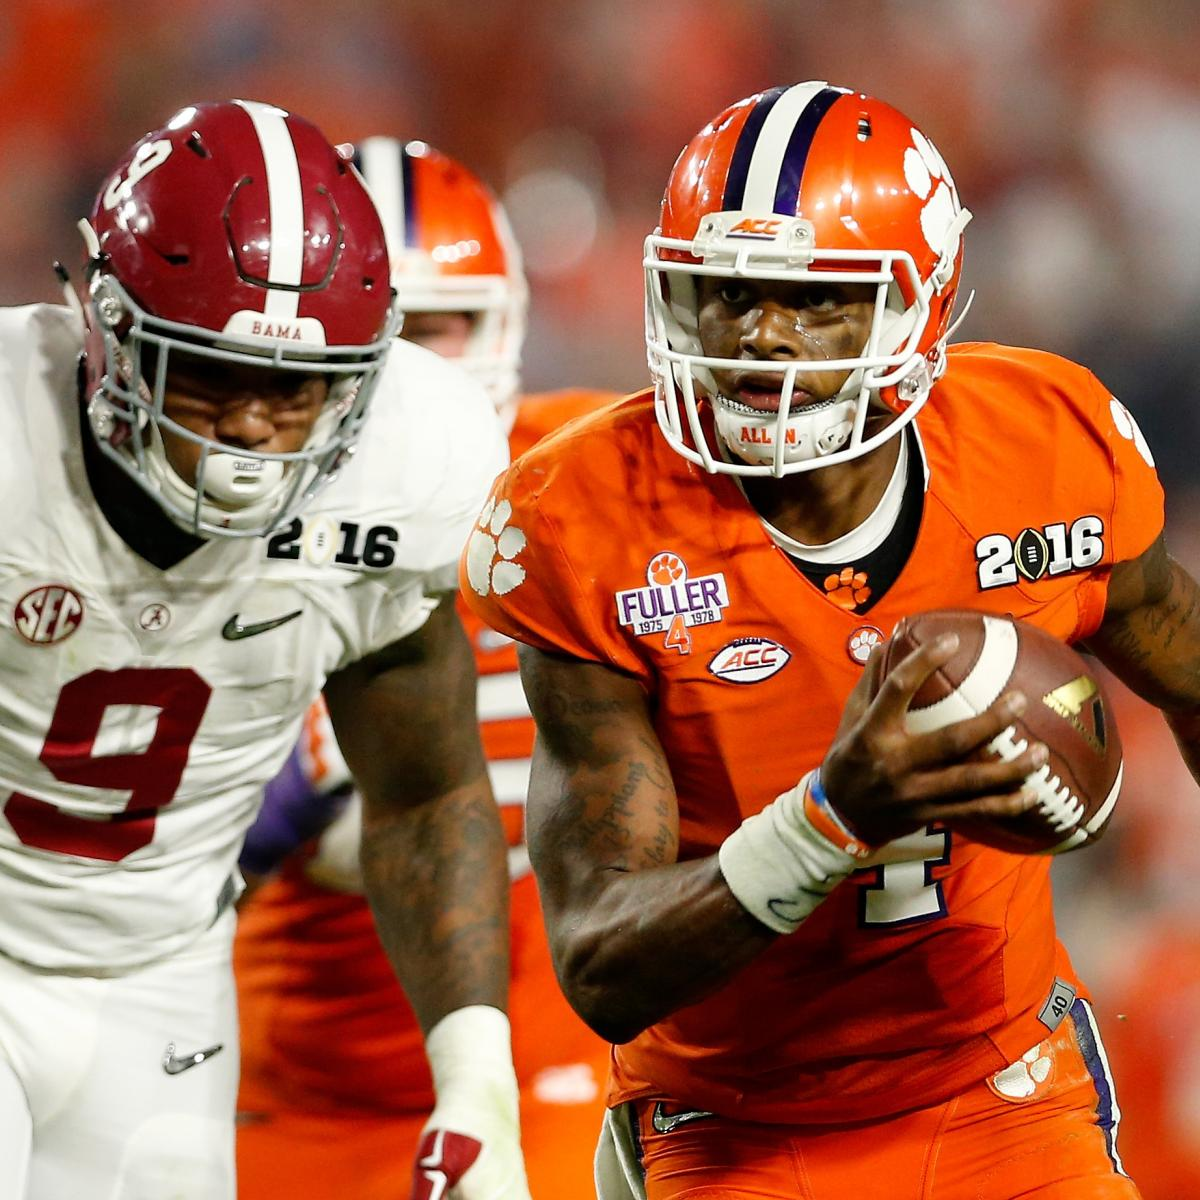 Alabama Vs Clemson Live Score Highlights For Cfp